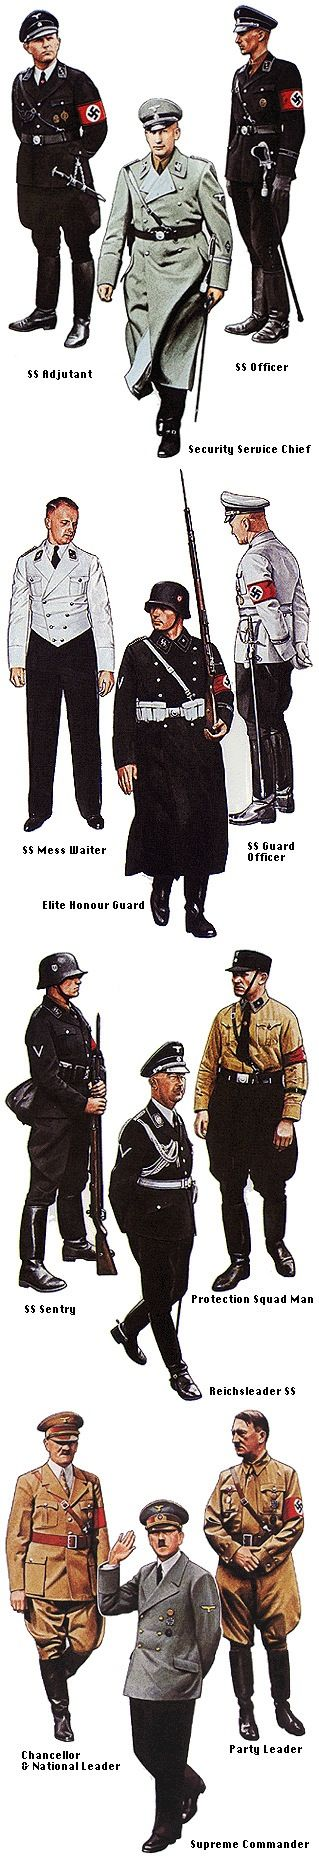 WWII German uniforms, designed by Hugo Boss. From the 1937 National Socialist handbook.